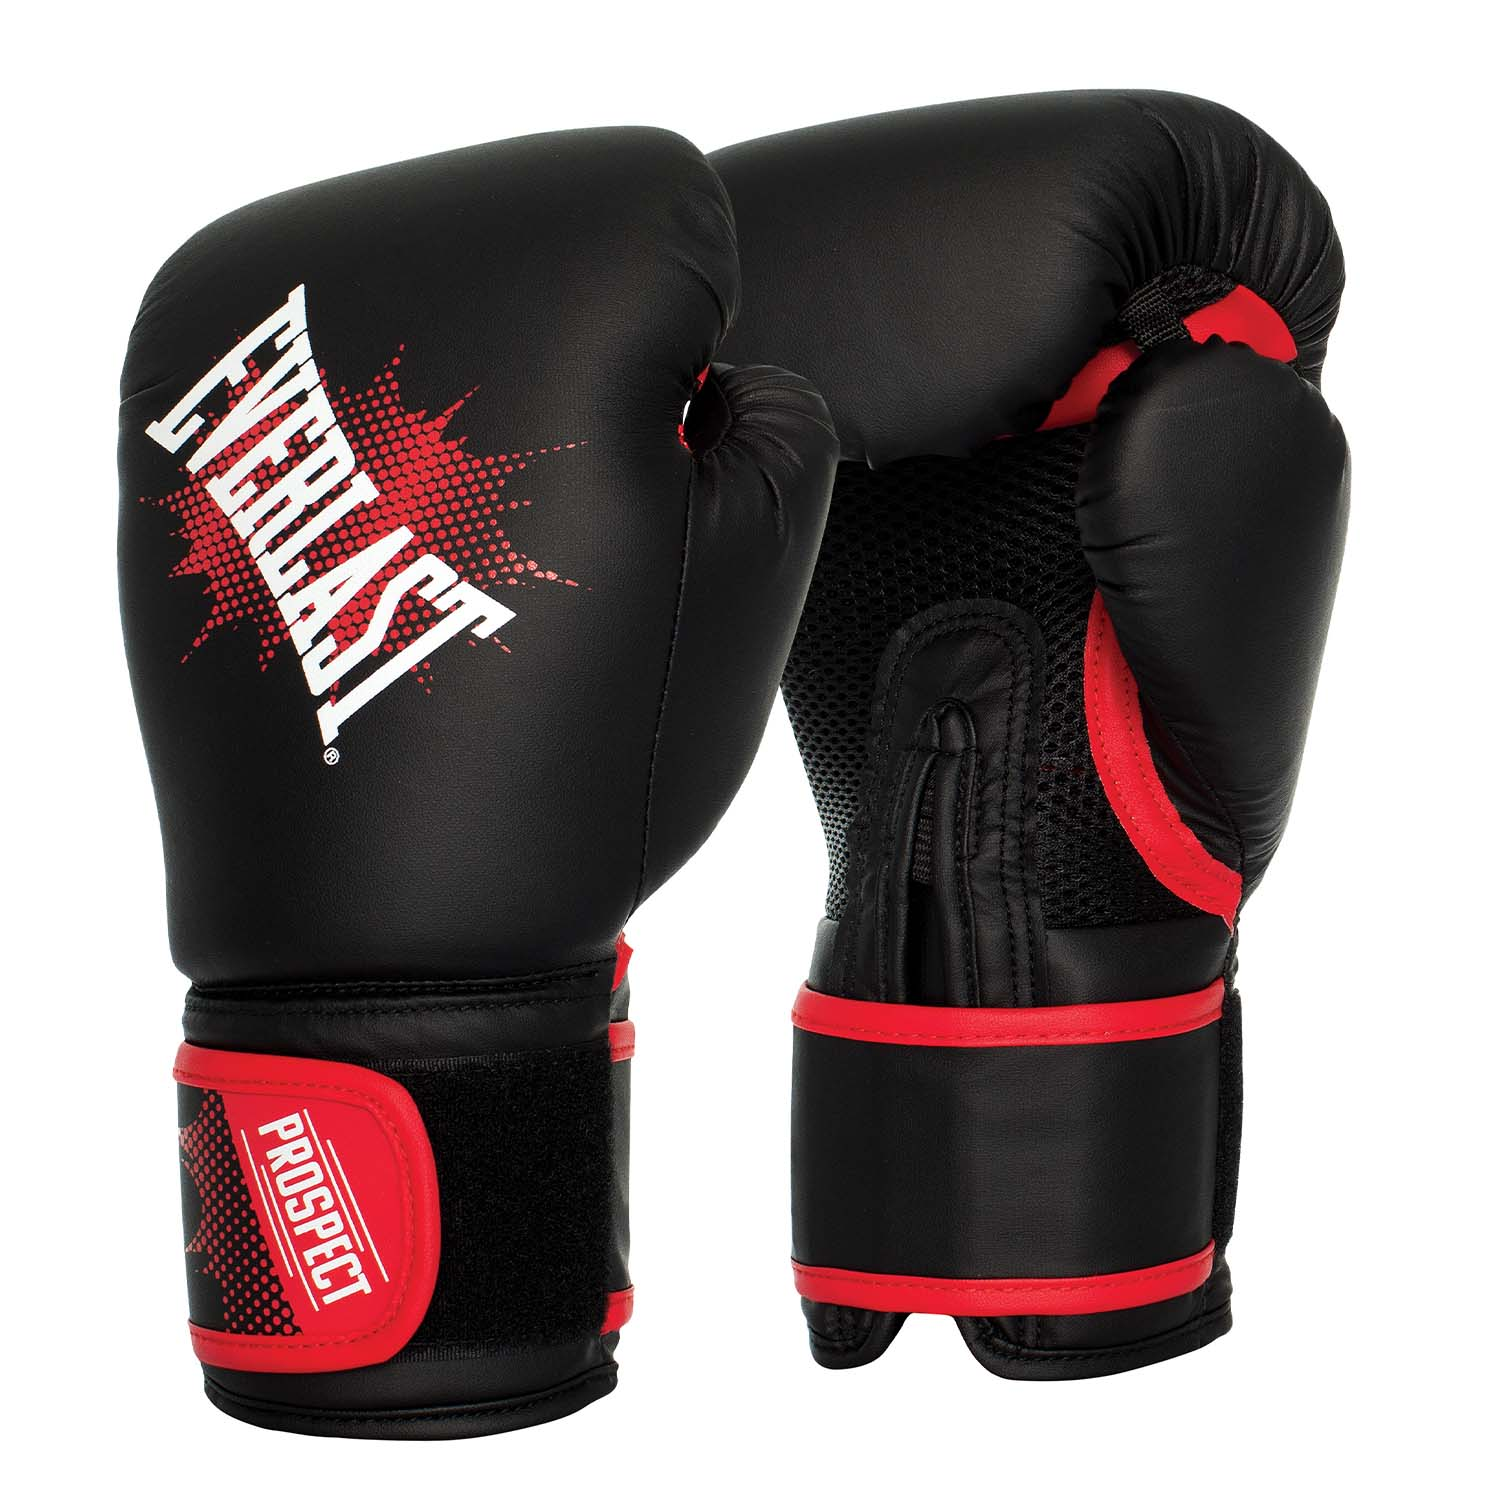 Prospect Junior Boxing Glove 6OZ